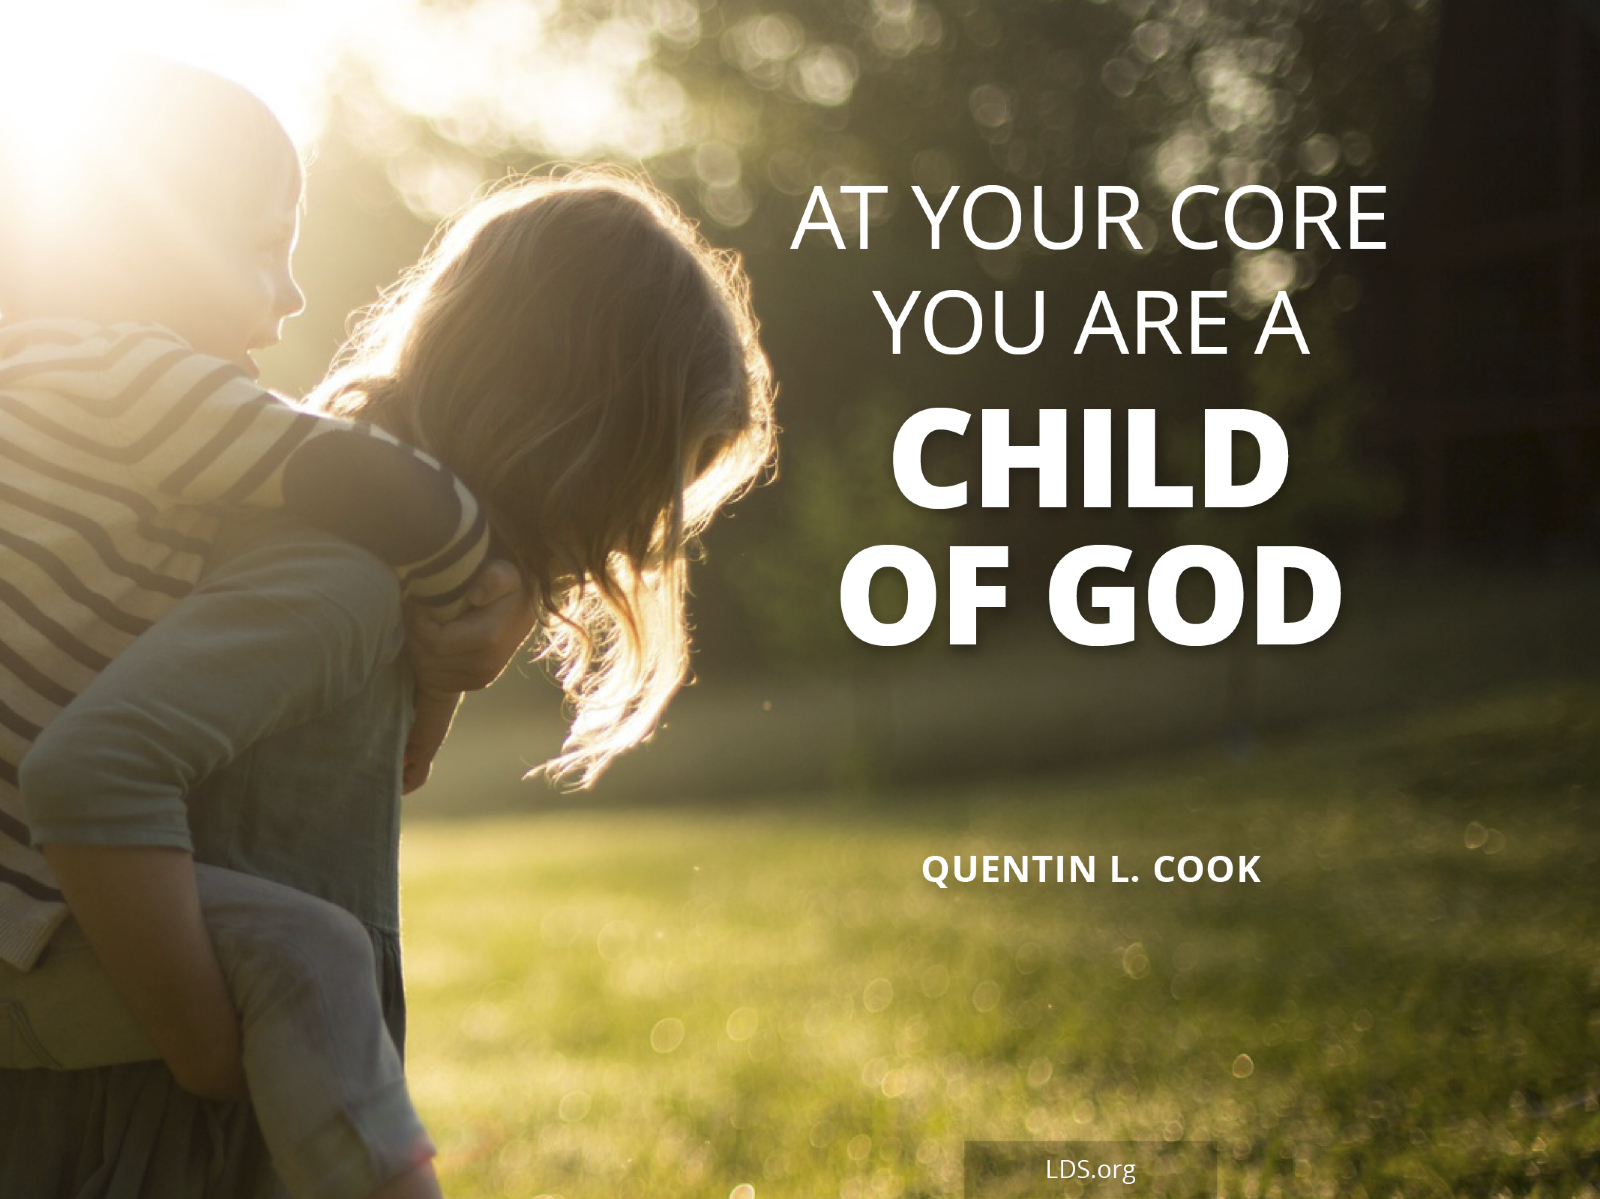 meme cook core child god 1808322 print?download=true child of god,Child Of God Meme